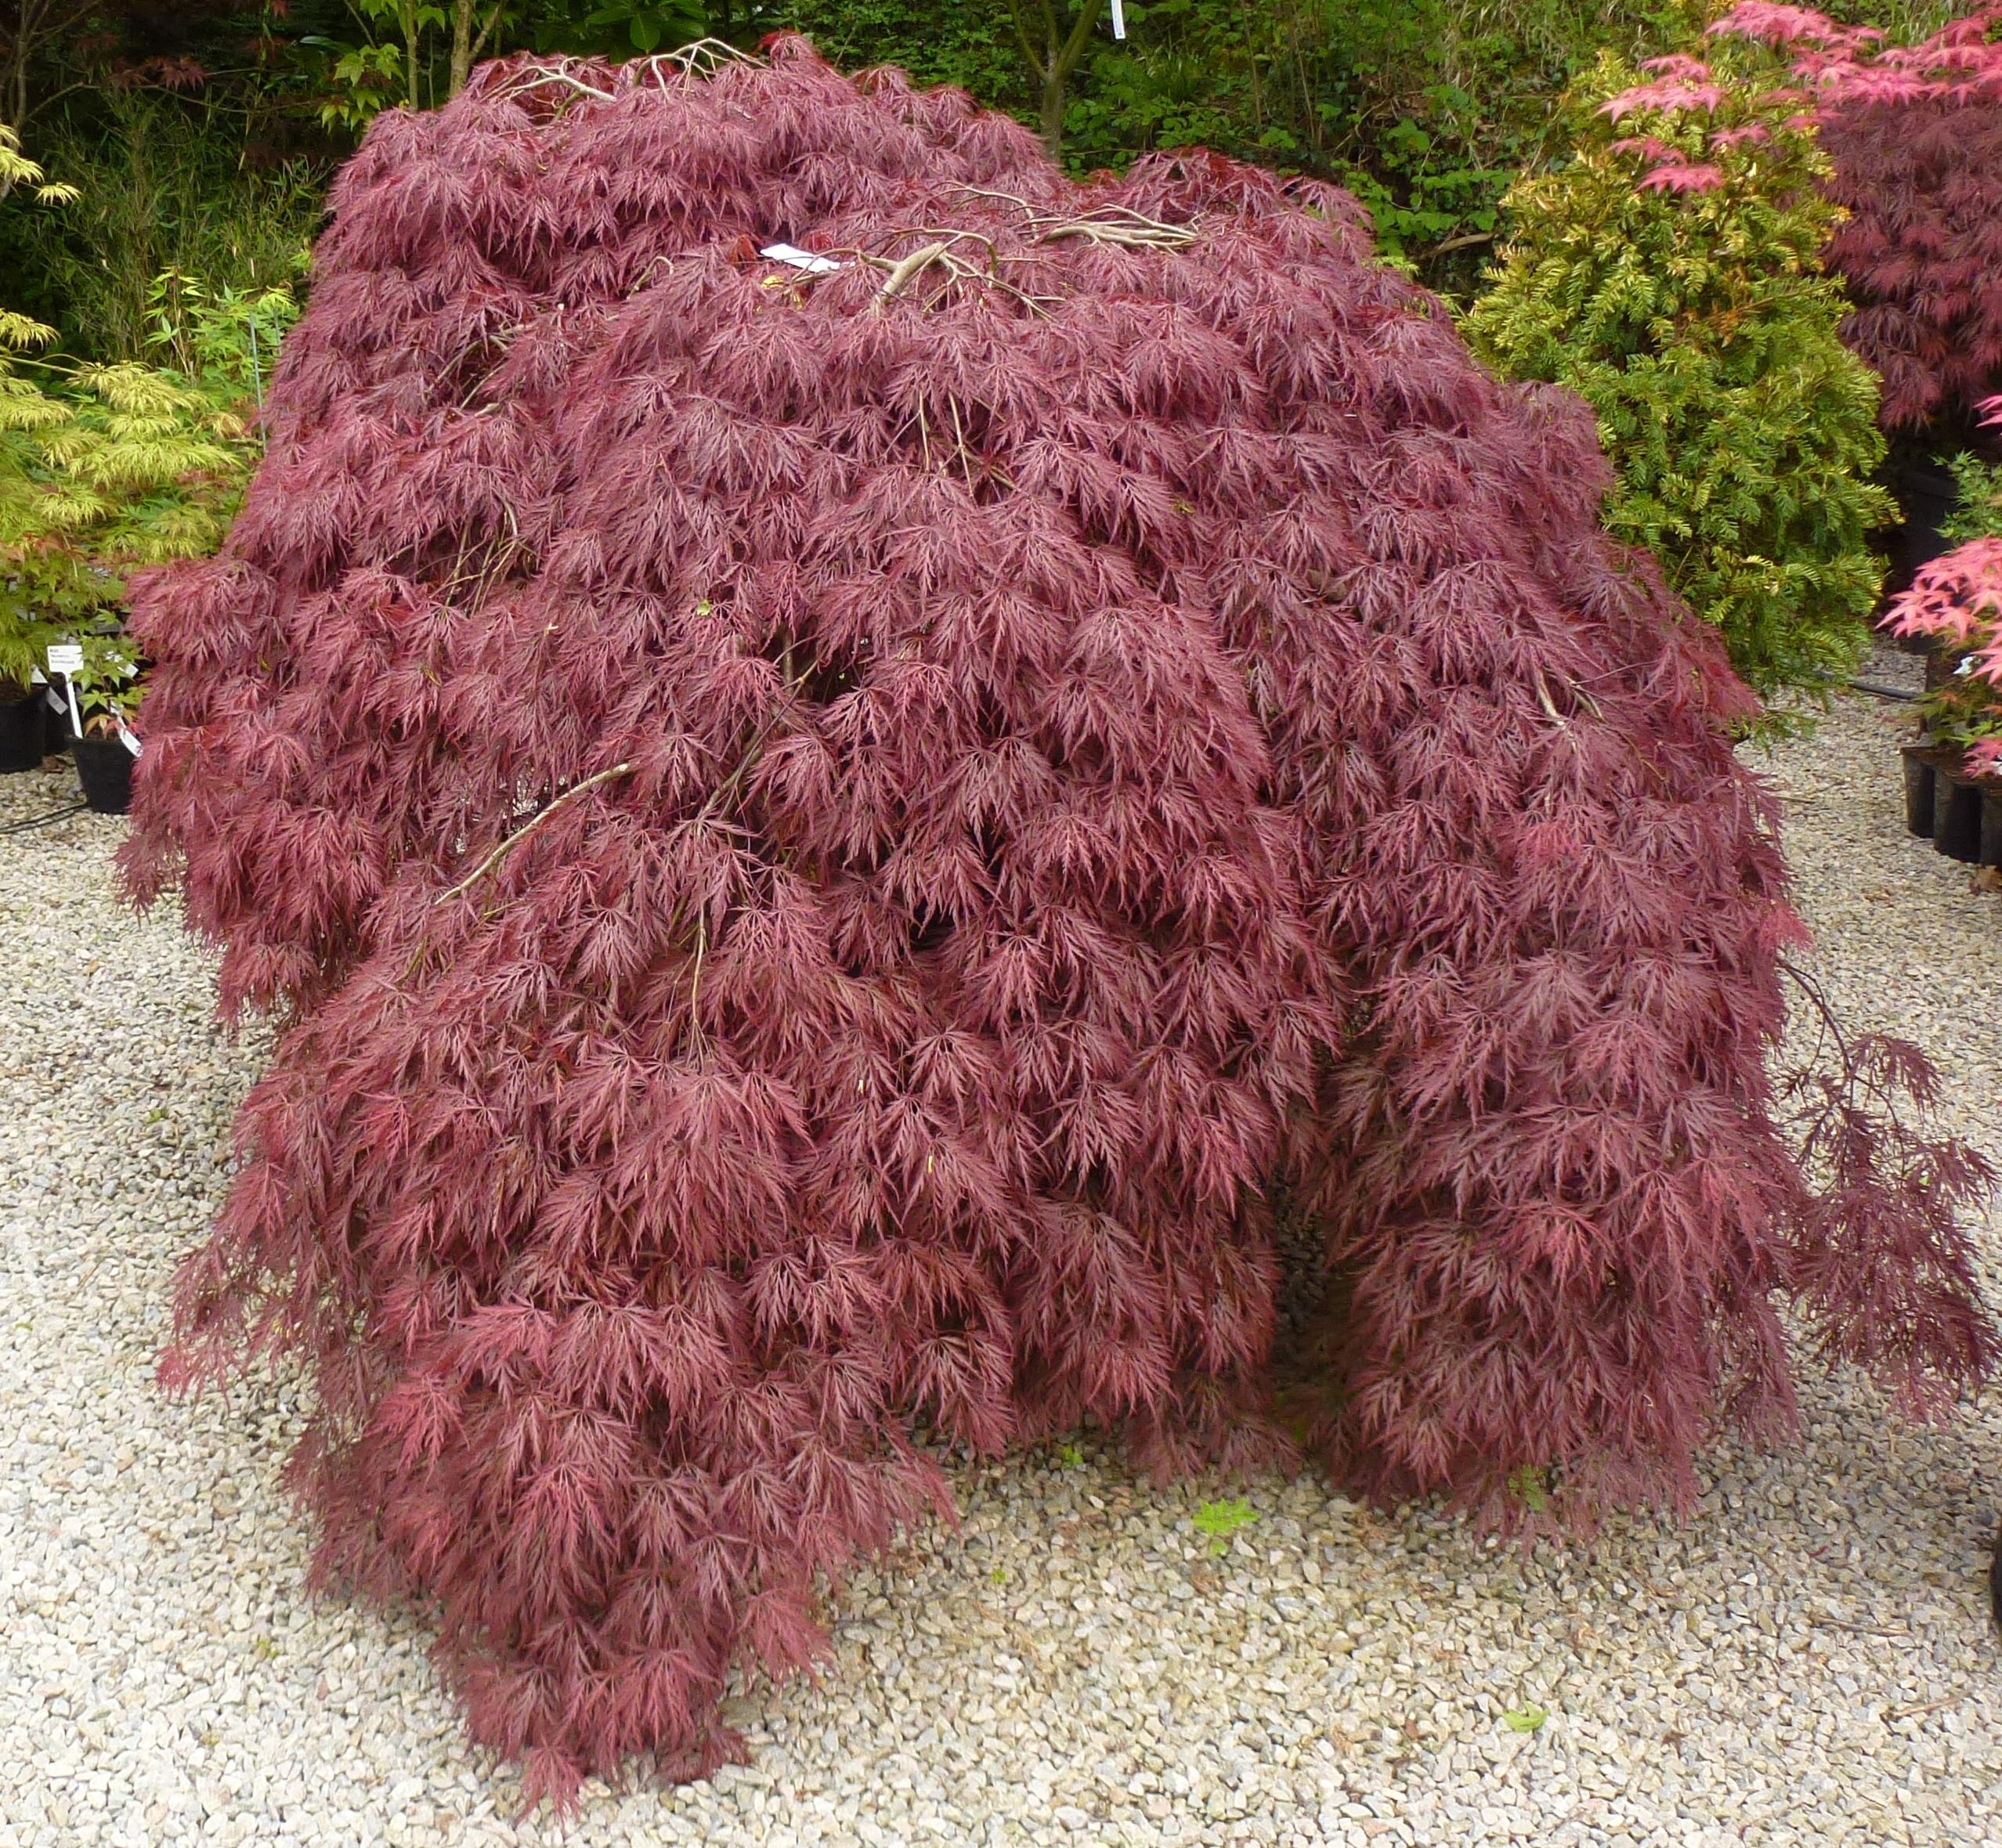 Acer palmatum 'Garnet' shape of the mature tree